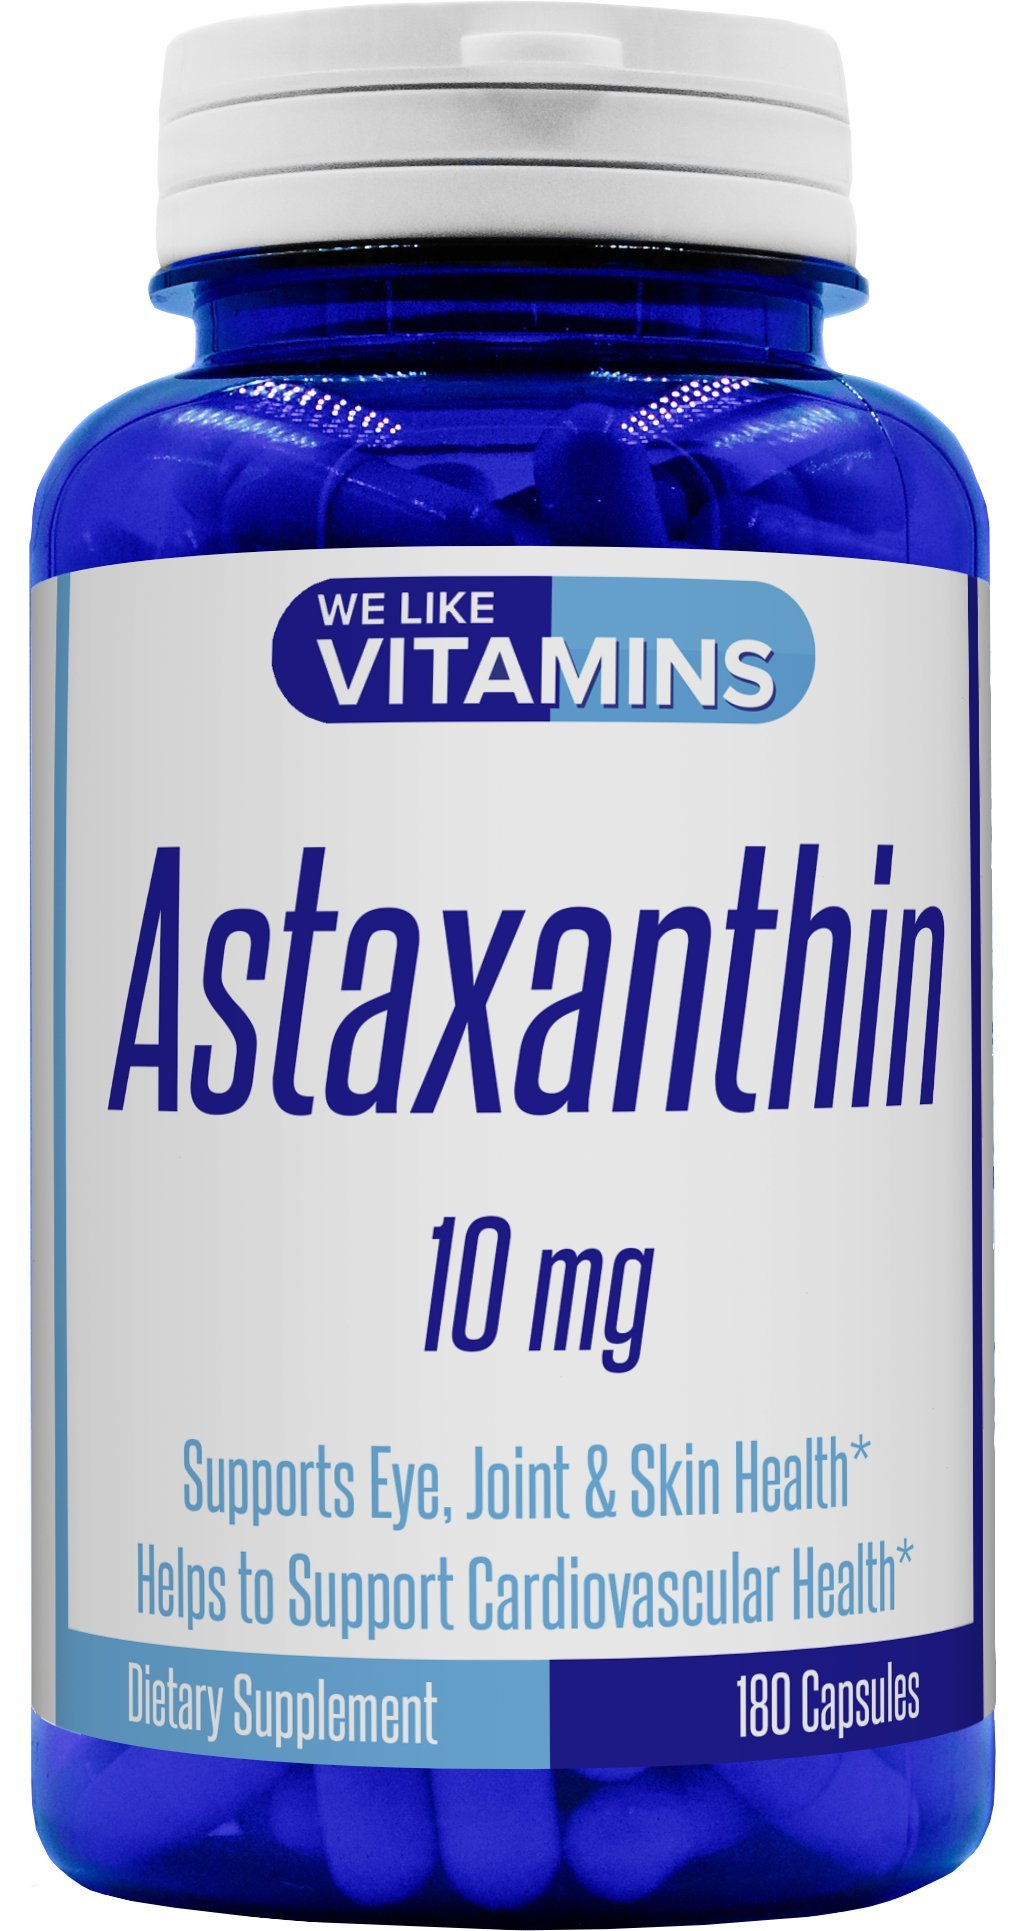 Astaxanthin 10mg - 180 Capsules - Best Value Max Strength Astaxanthin Supplement 6 Month Supply